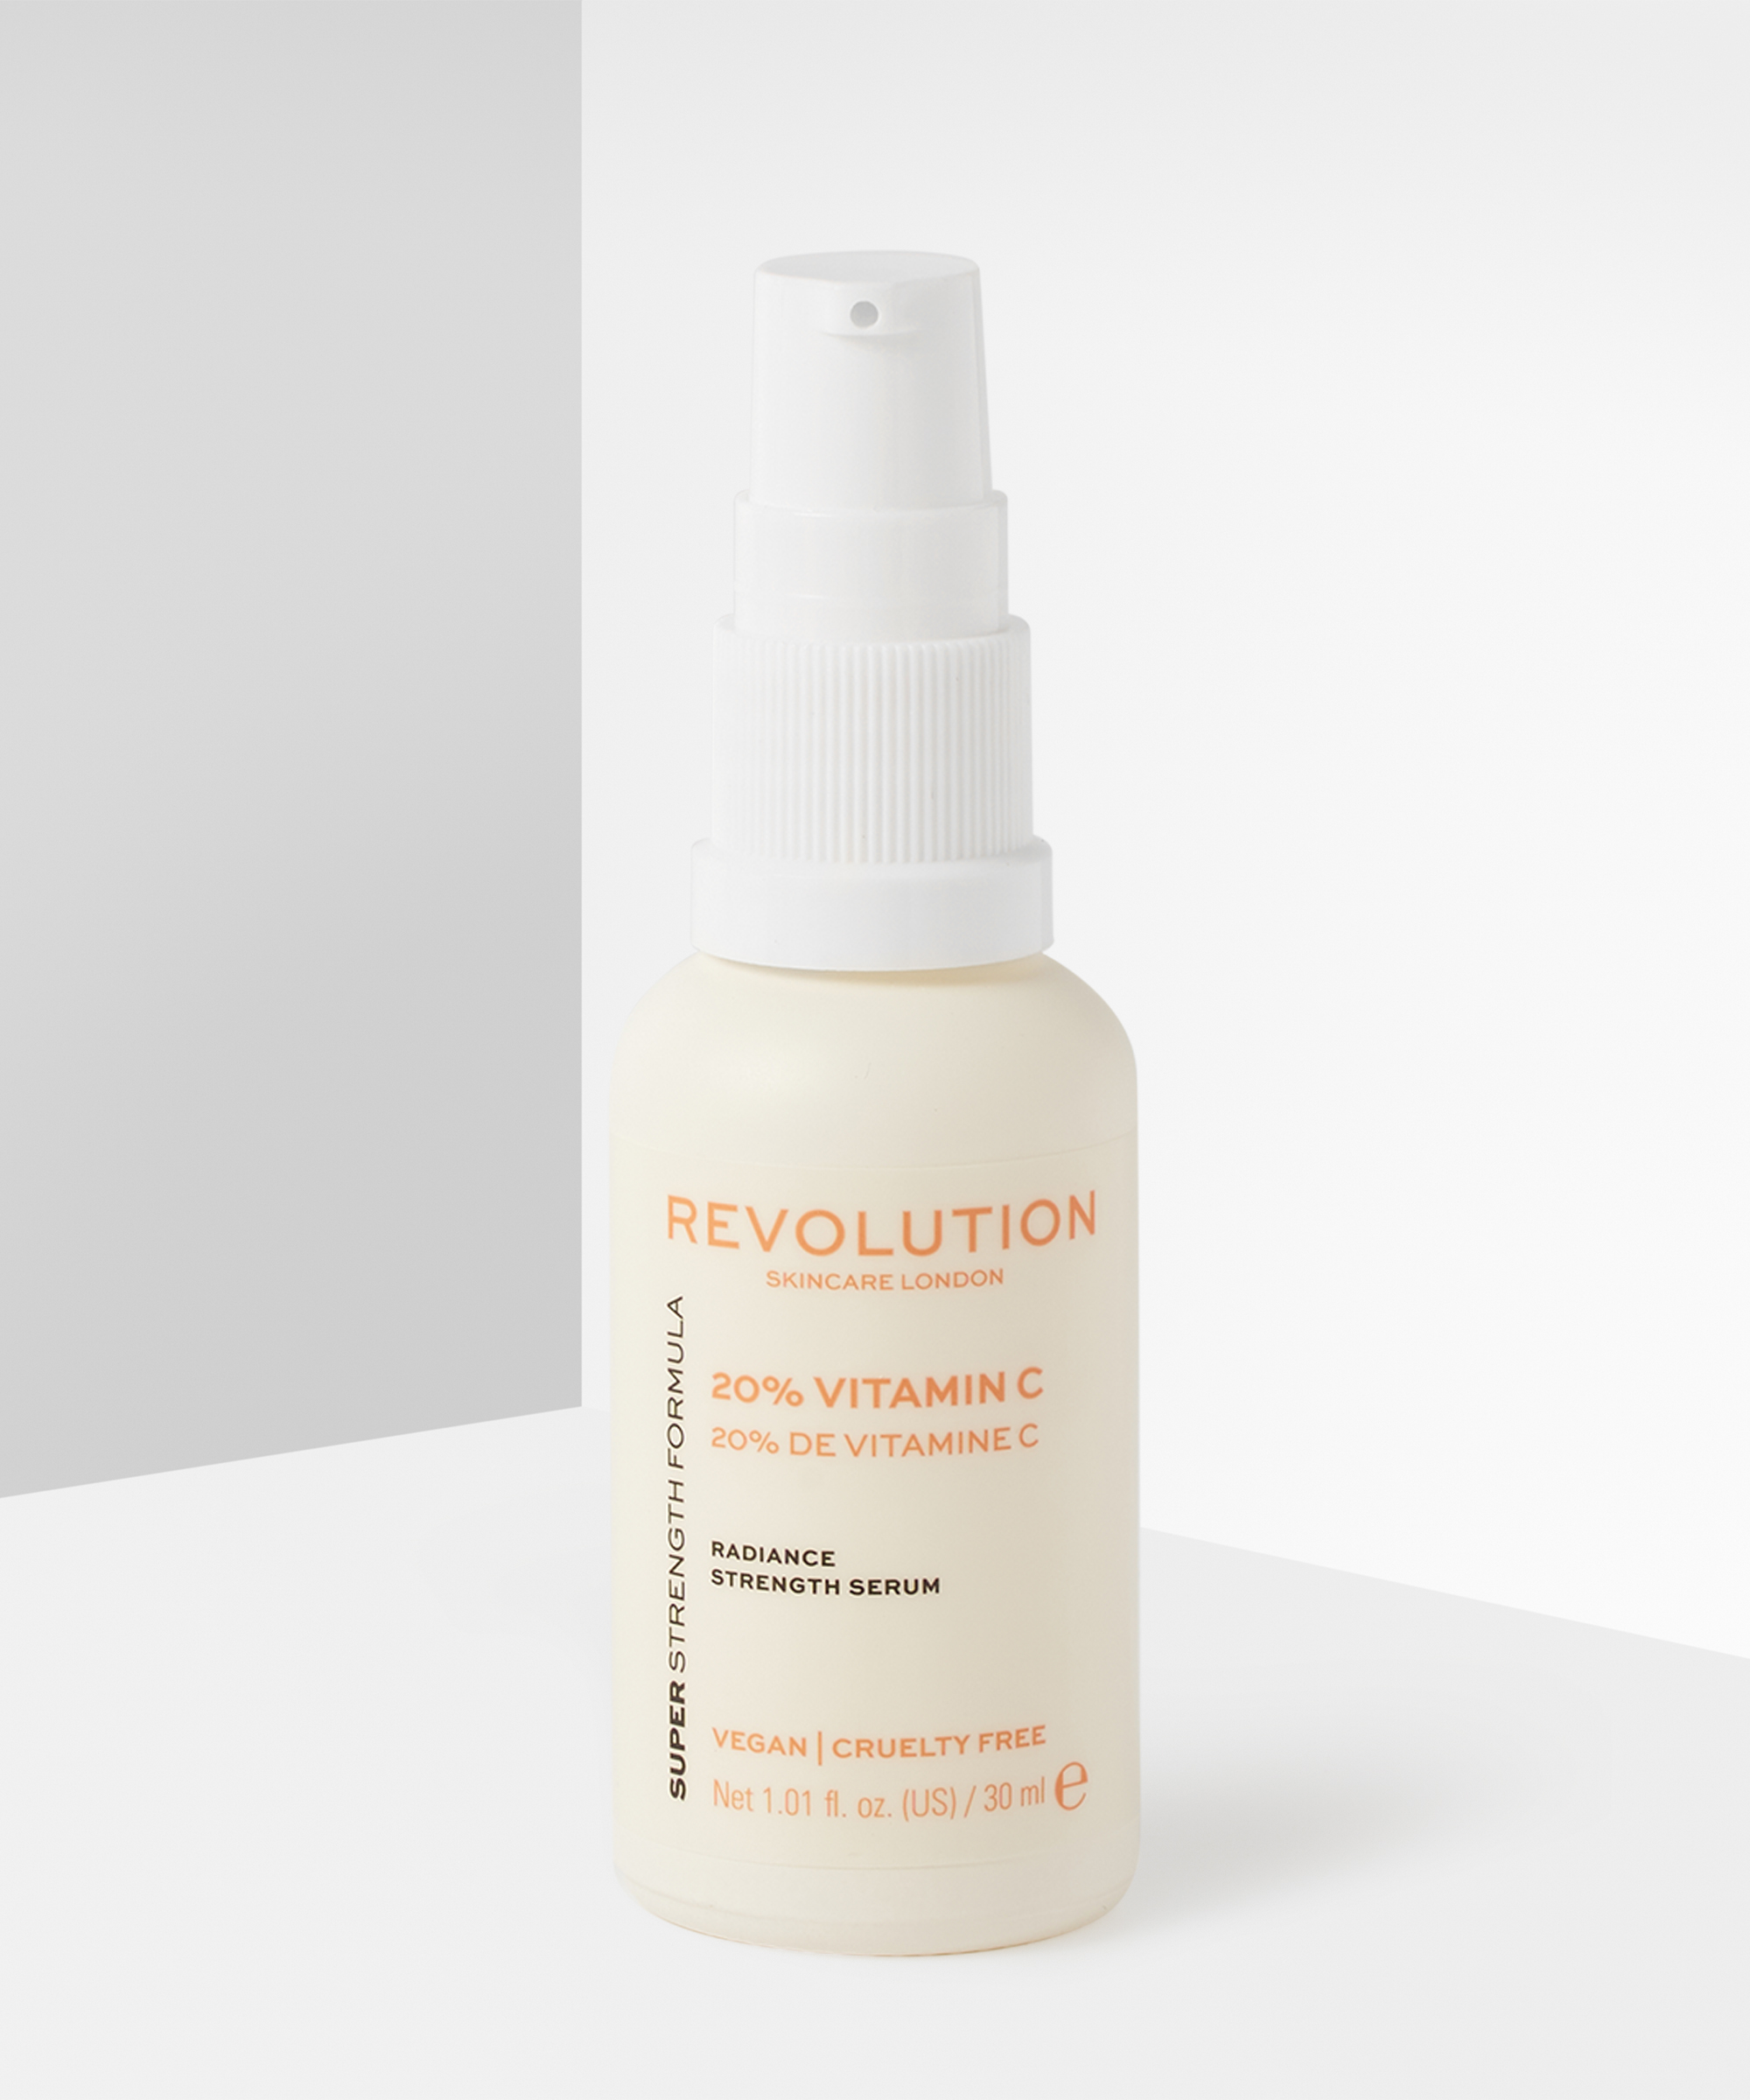 Revolution Skincare 20% Vitamin C Radiance Strength Serum at BEAUTY BAY